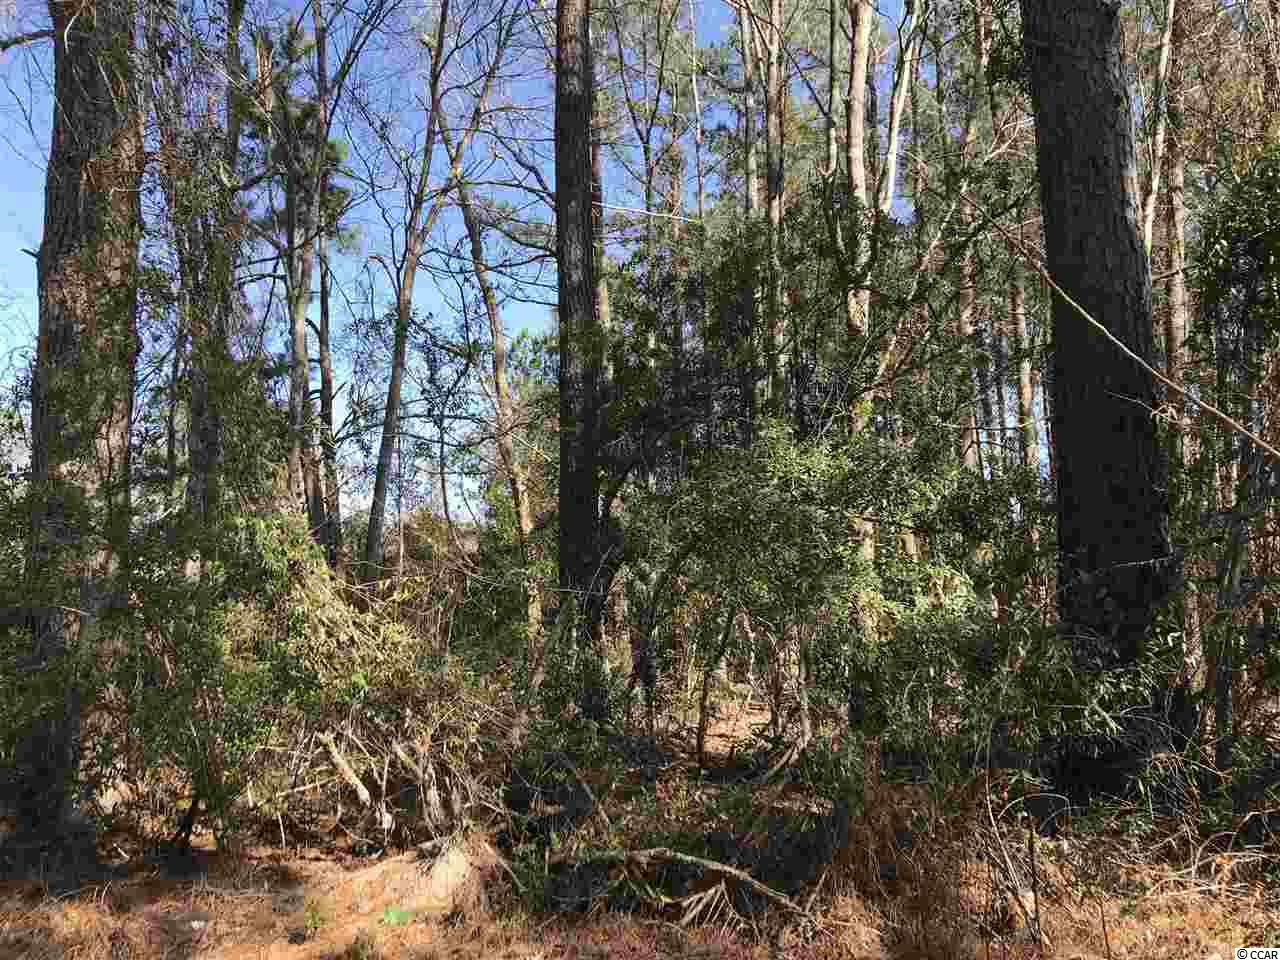 NICE LOT ON PEE DEE HIGHWAY.  BUCKSPORT WATER AVAILABLE.  JUST UNDER A HALF ACRE LOT.  OUT IN THE COUNTRY JUST A SHORT DRIVE TO TOWN. VERY FEW RESTRICTIONS AND COUNTY ZONING.